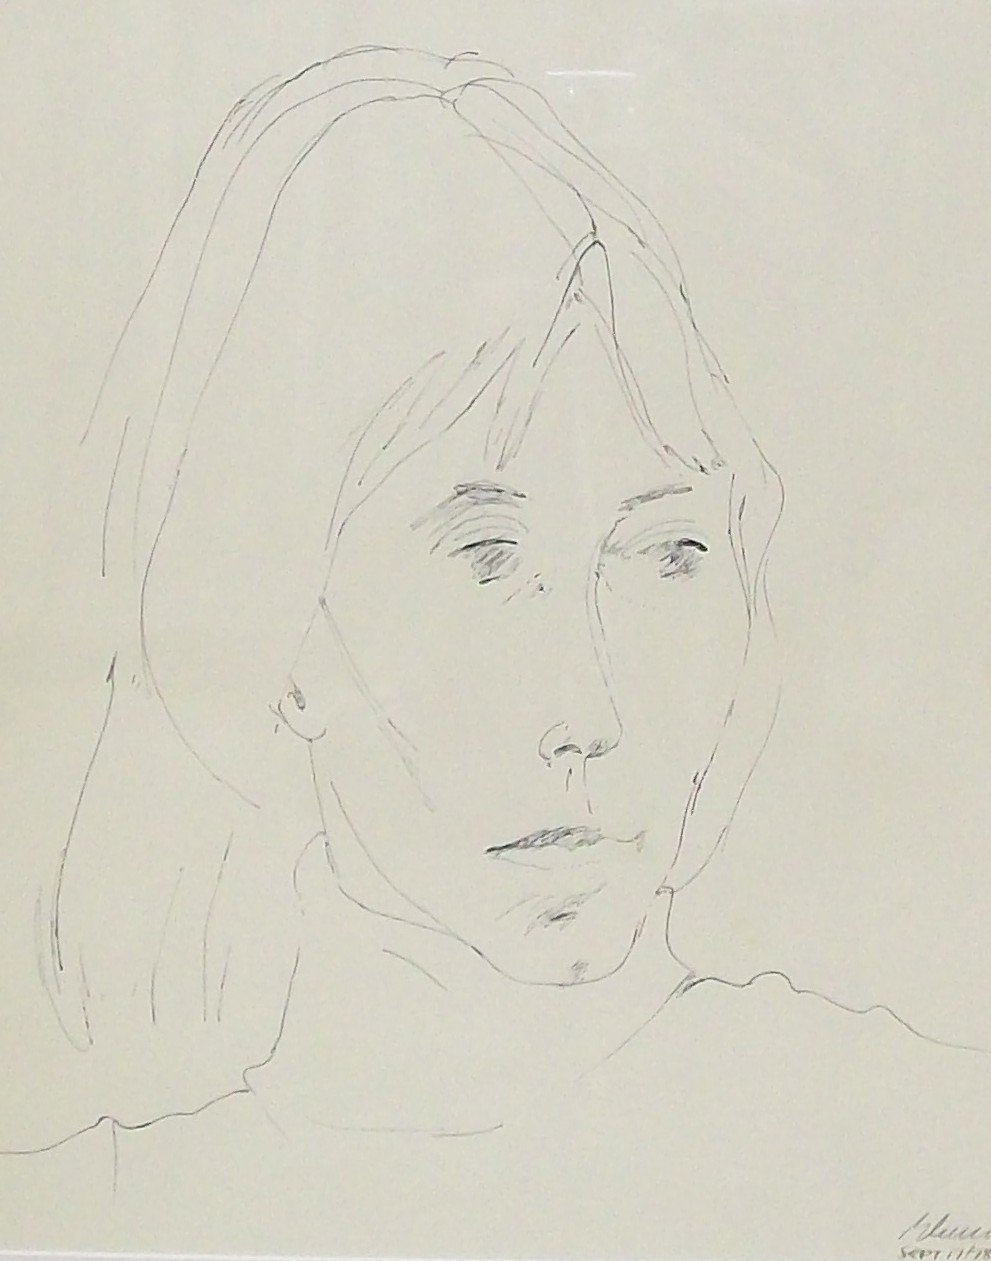 Greg Curnoe, Shelia, lithography on paper, September 1978, 30x24""